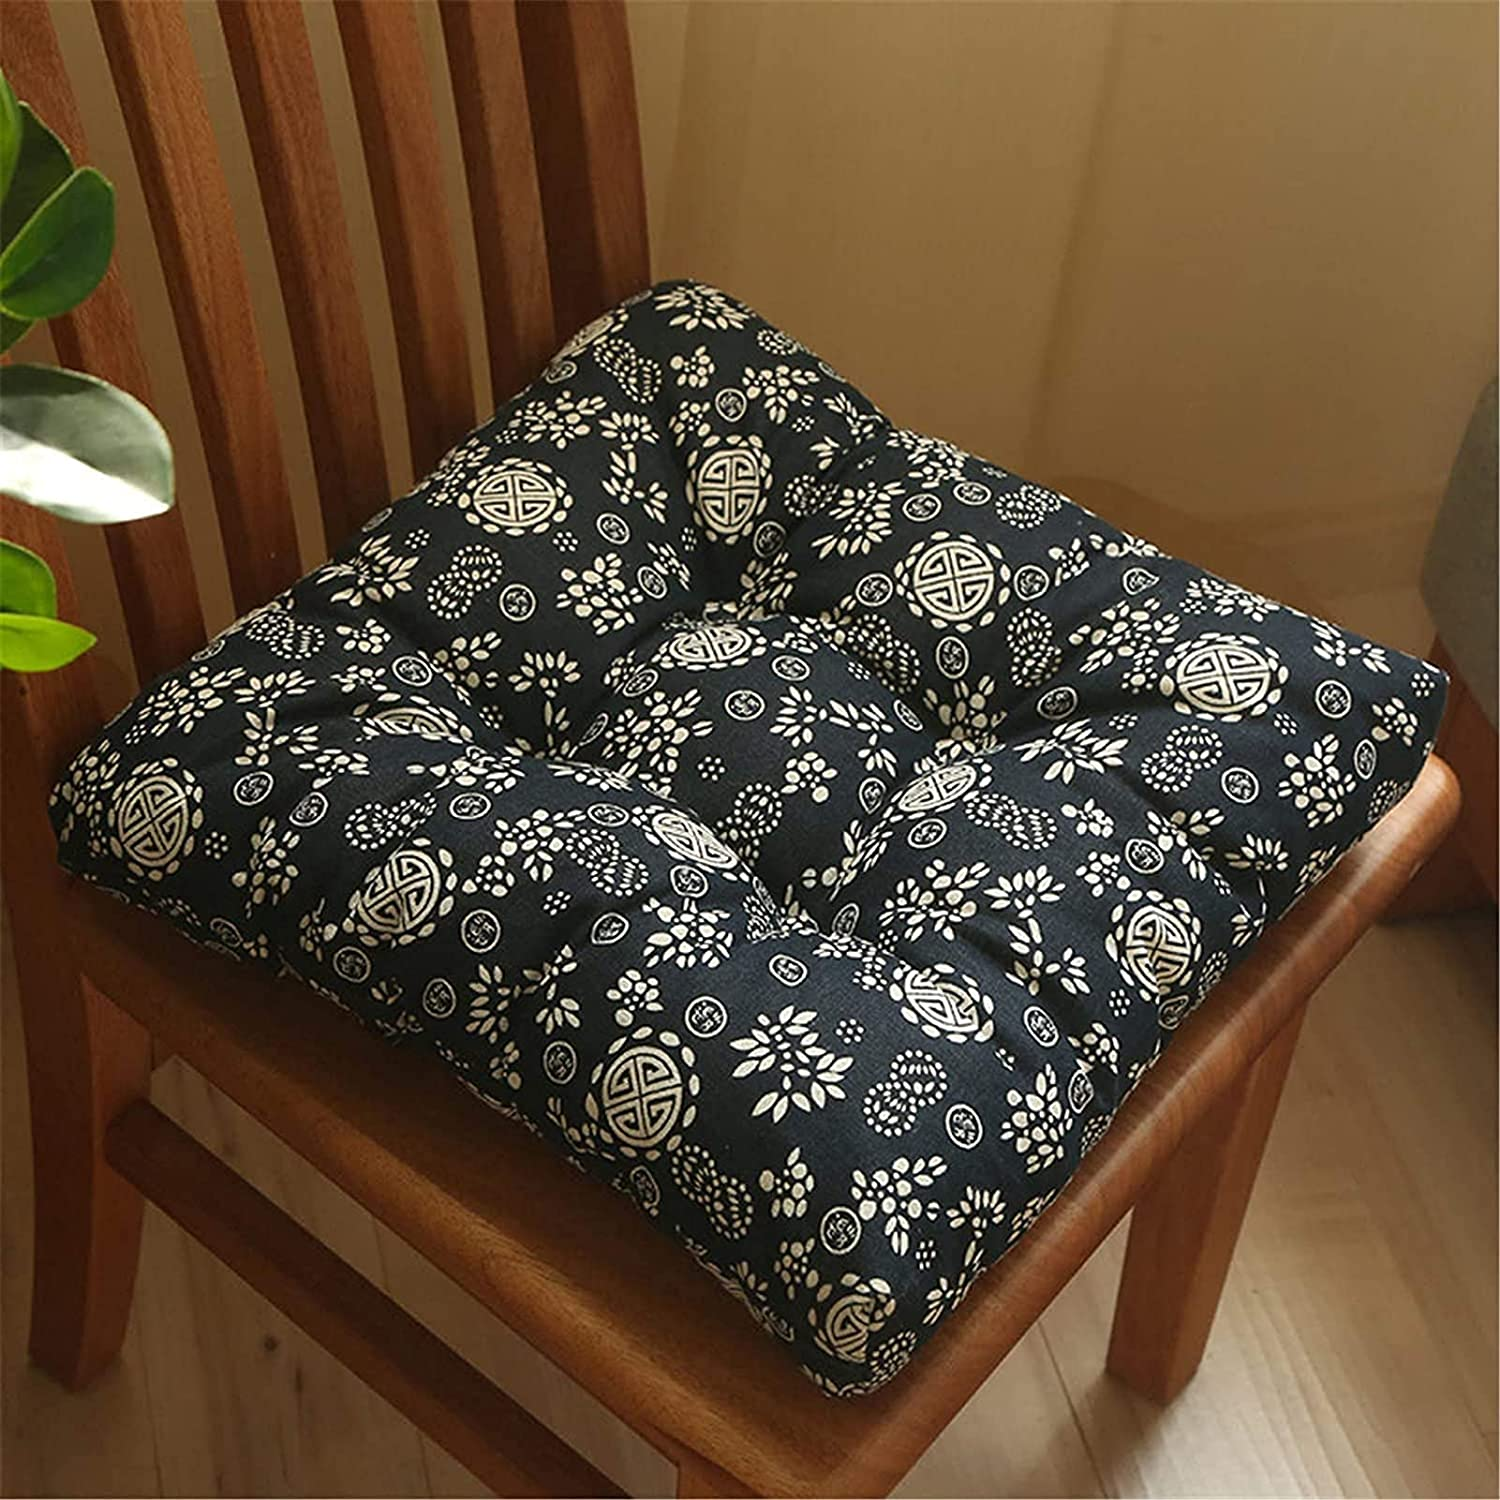 Discount is also underway HHXX Sofa Pads Tatami Large-scale sale Cushion Square Office Chair for